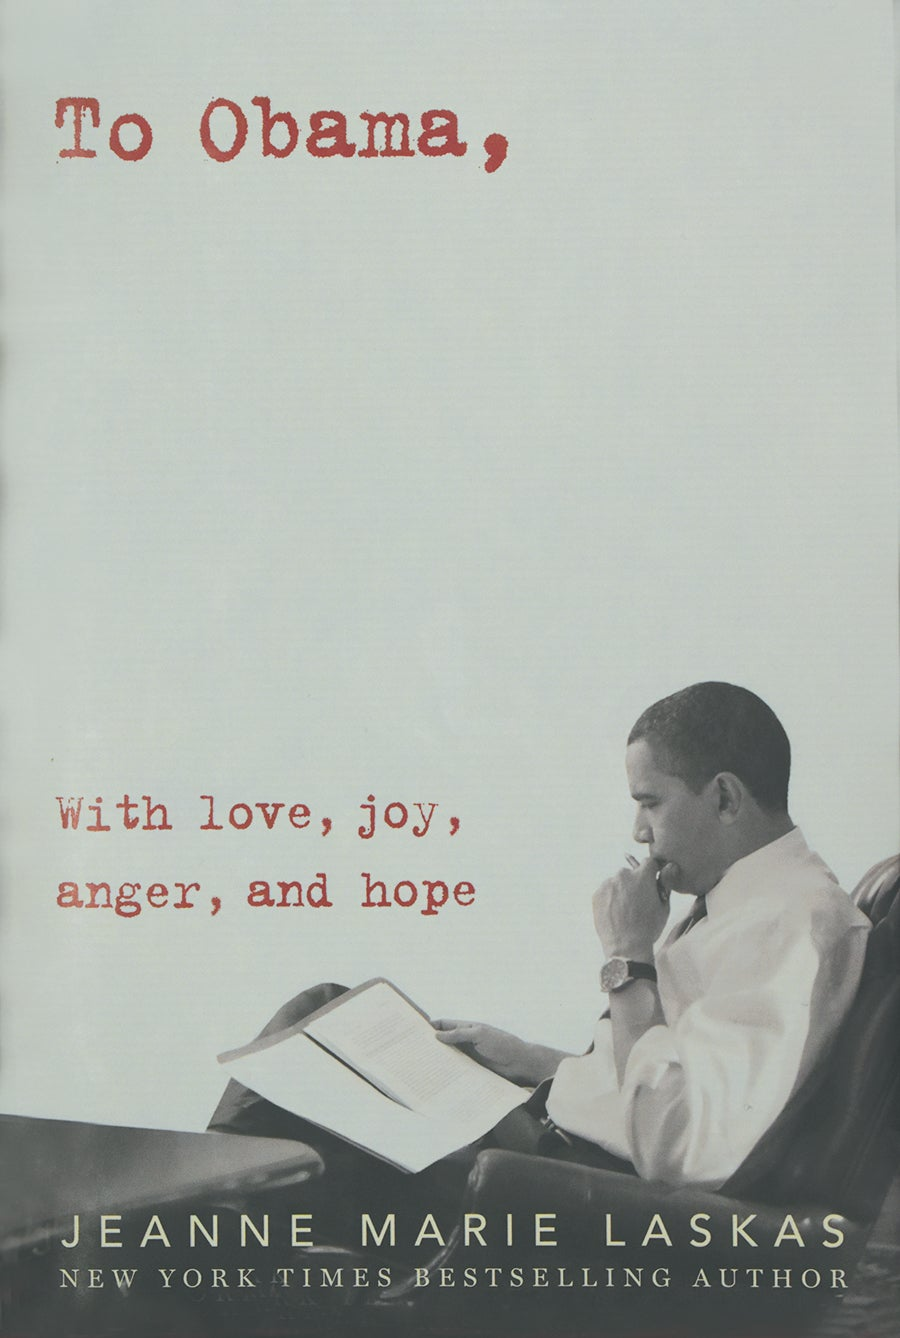 Cover of Jeanne Marie Laskas's book To Obama, With Love, Joy, Anger, and Hope